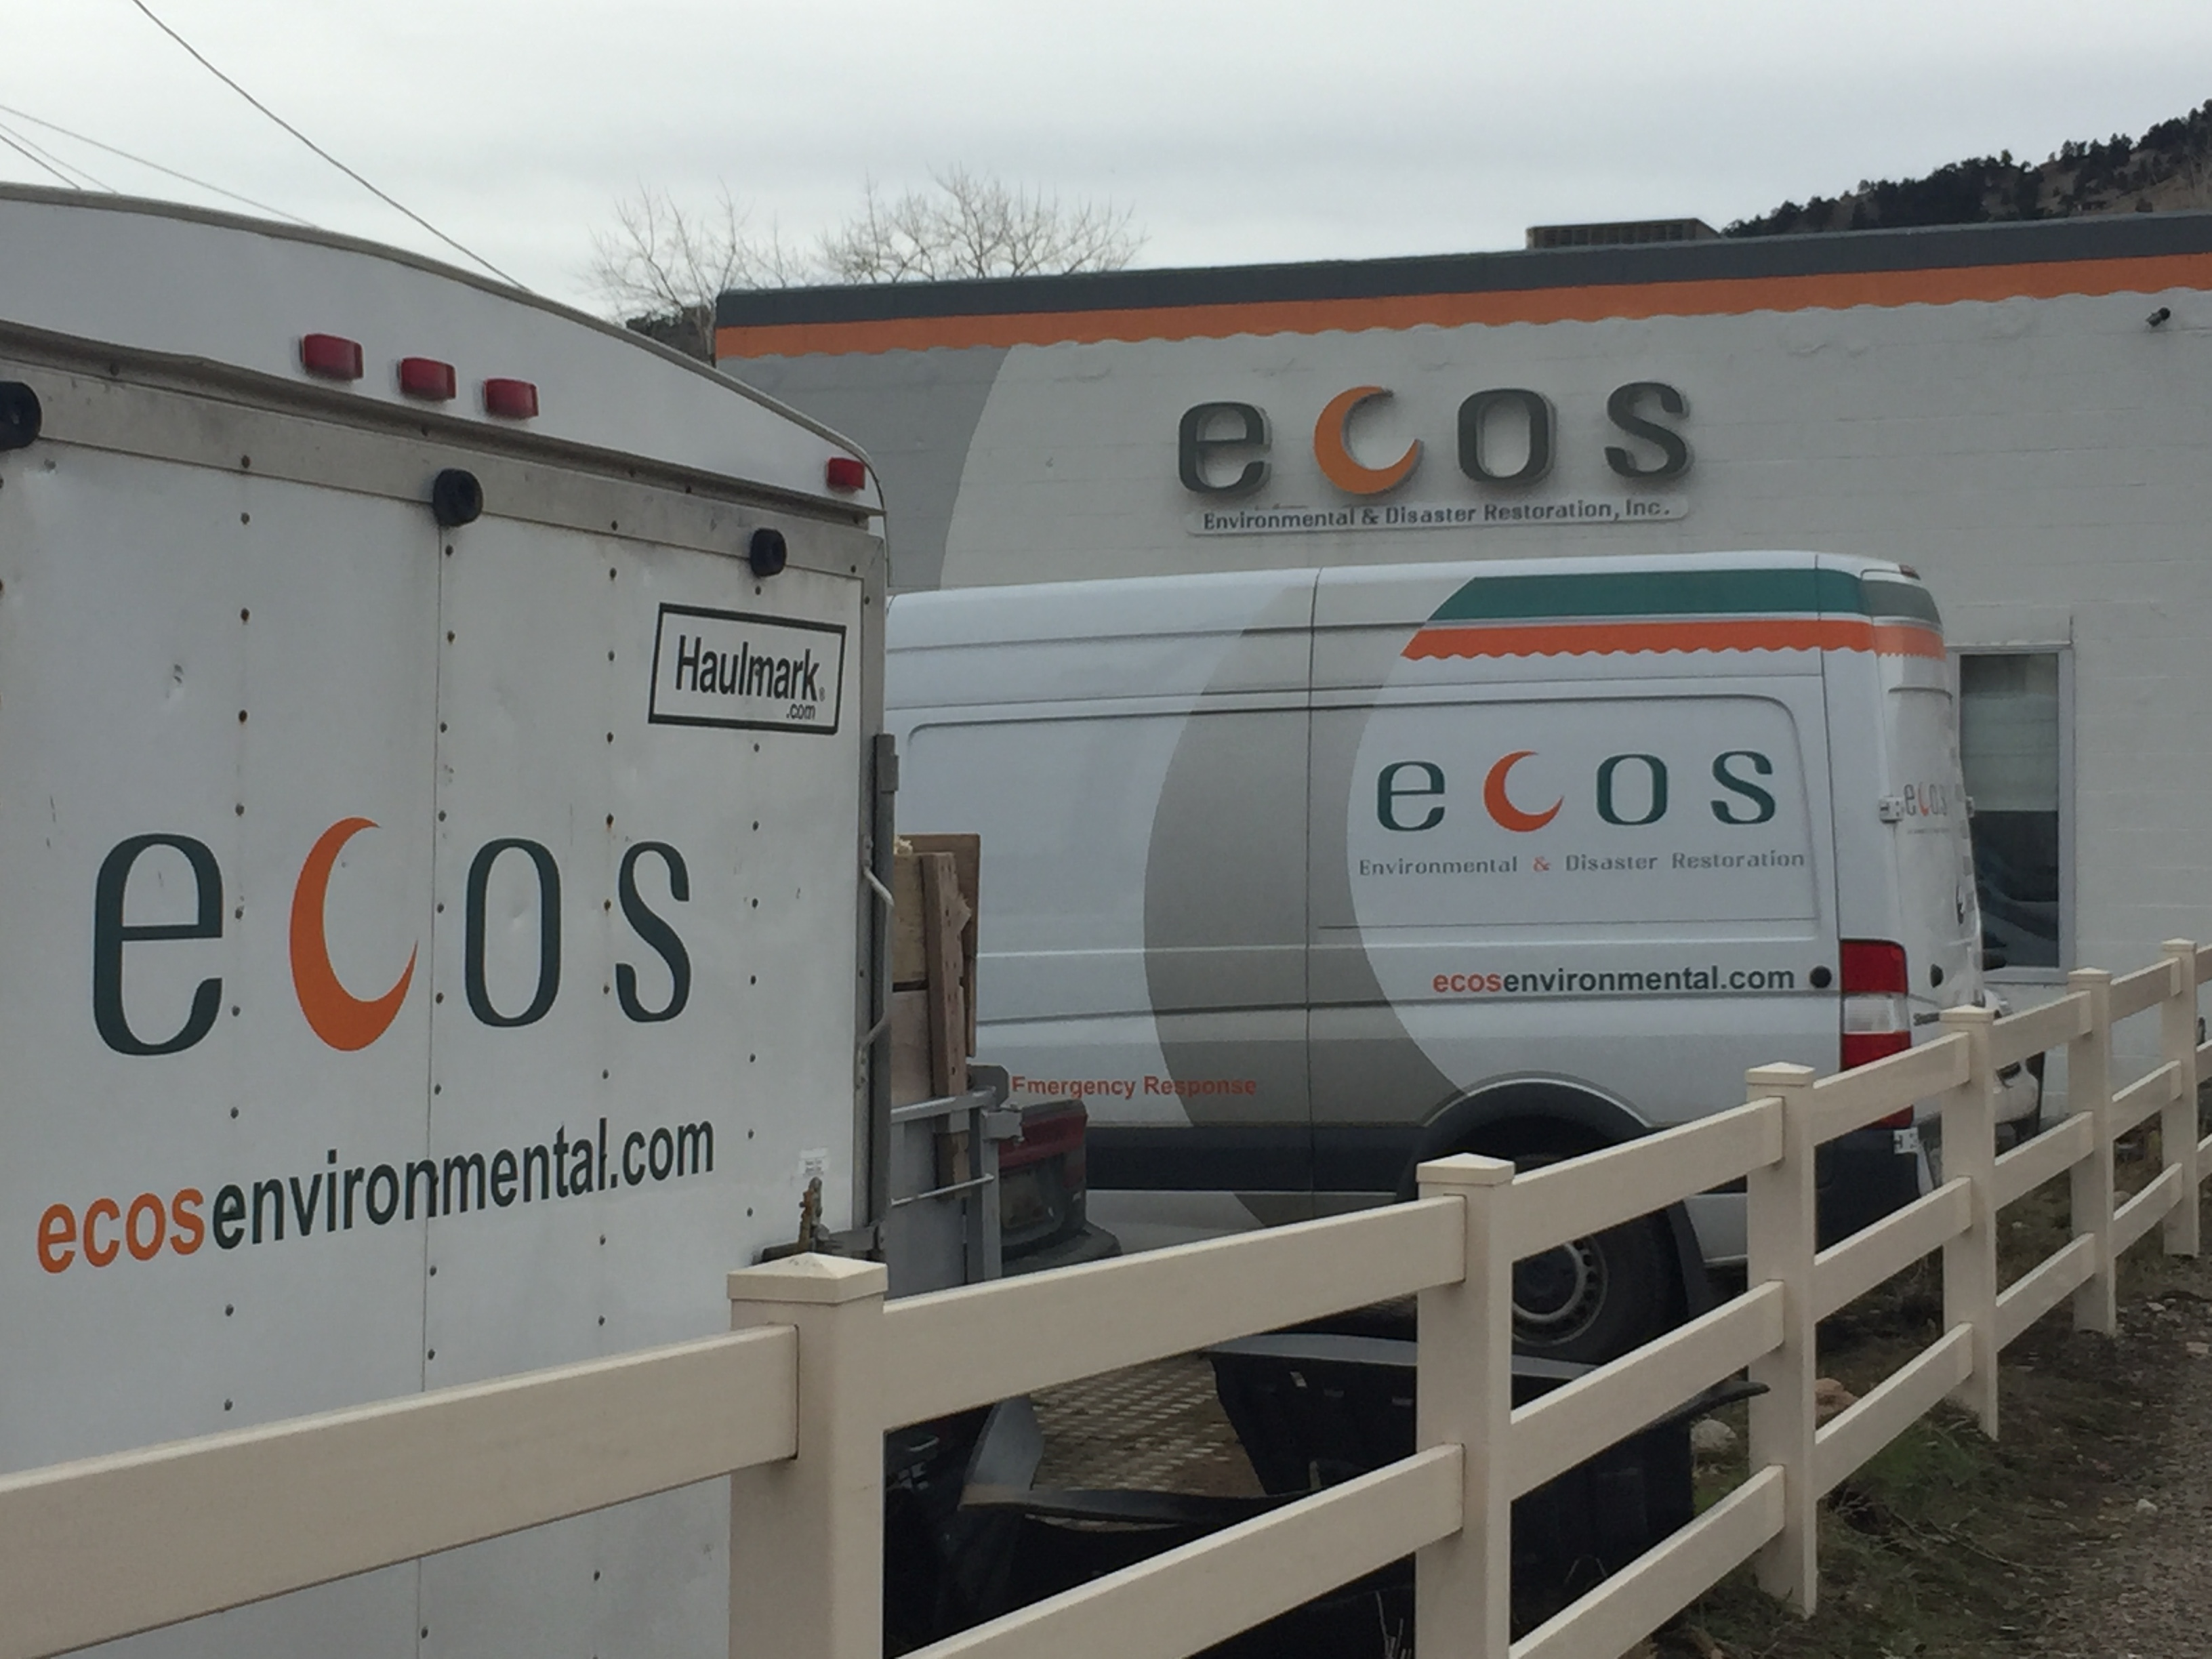 ECOS Environmental & Disaster Restoration, Inc. image 3